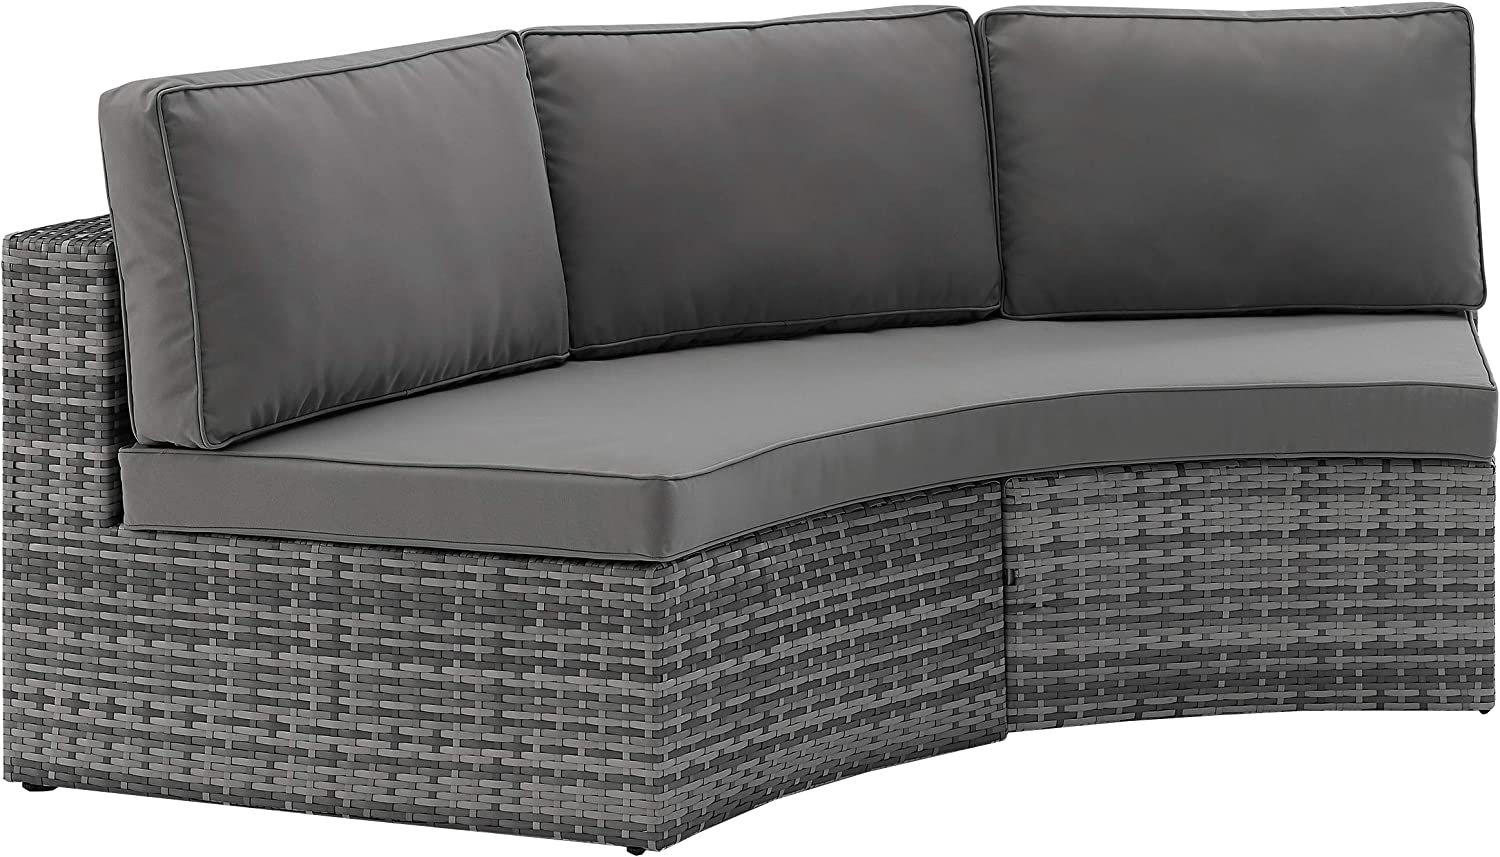 Crosley Furniture CO7120-GY Catalina Outdoor Wicker Round Sectional Sofa, Gray